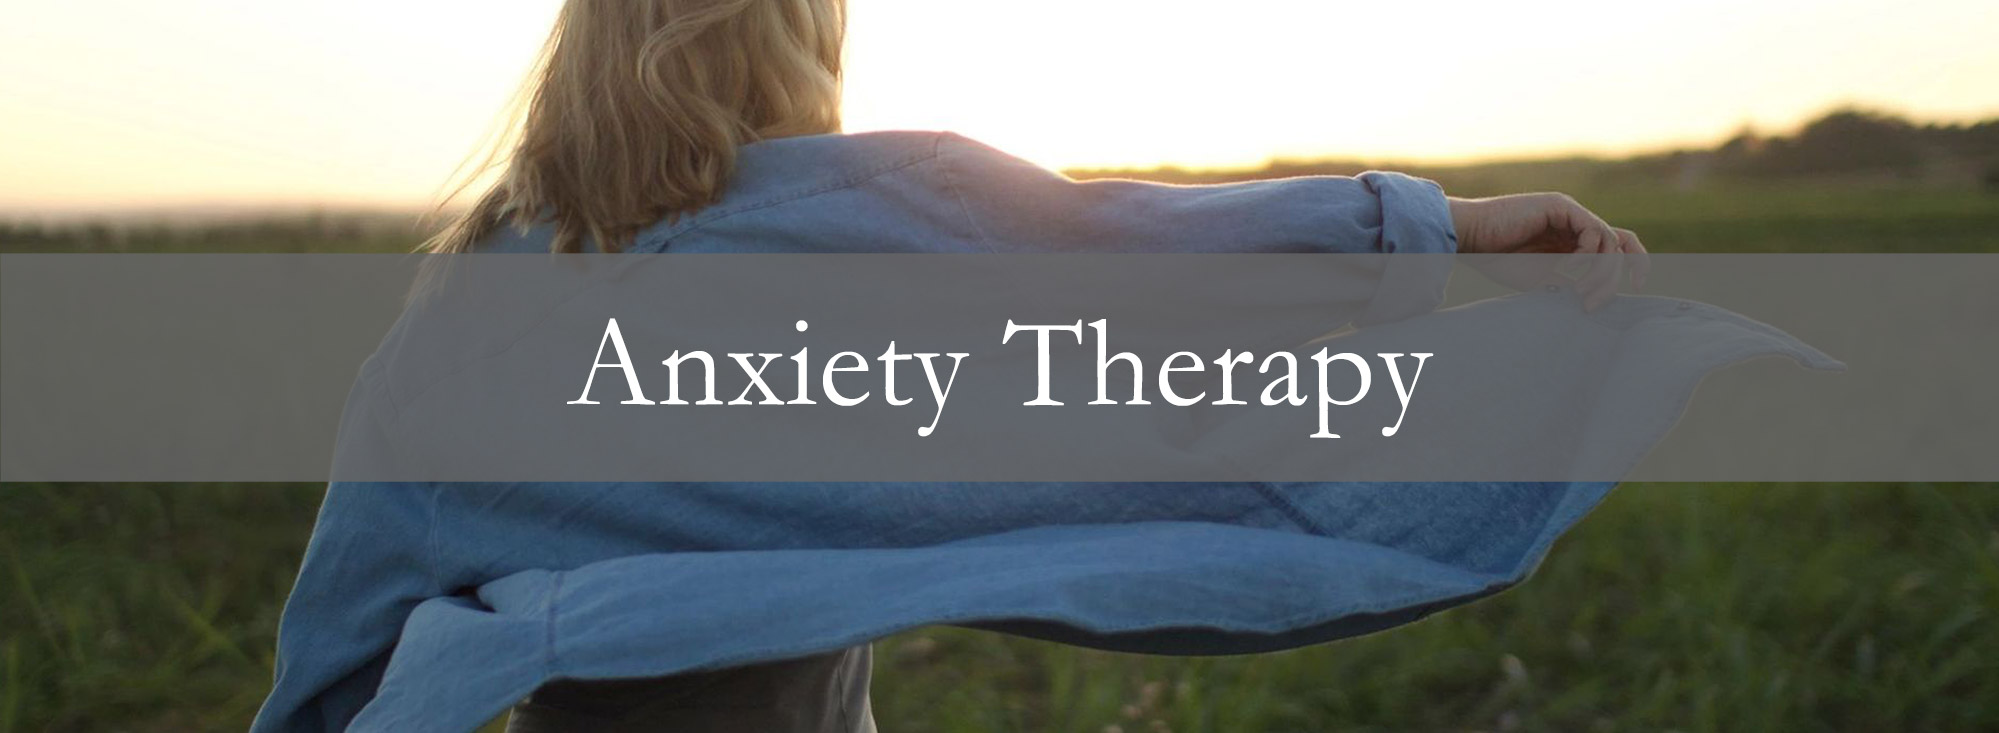 Anxiety Therapy in Northbrook